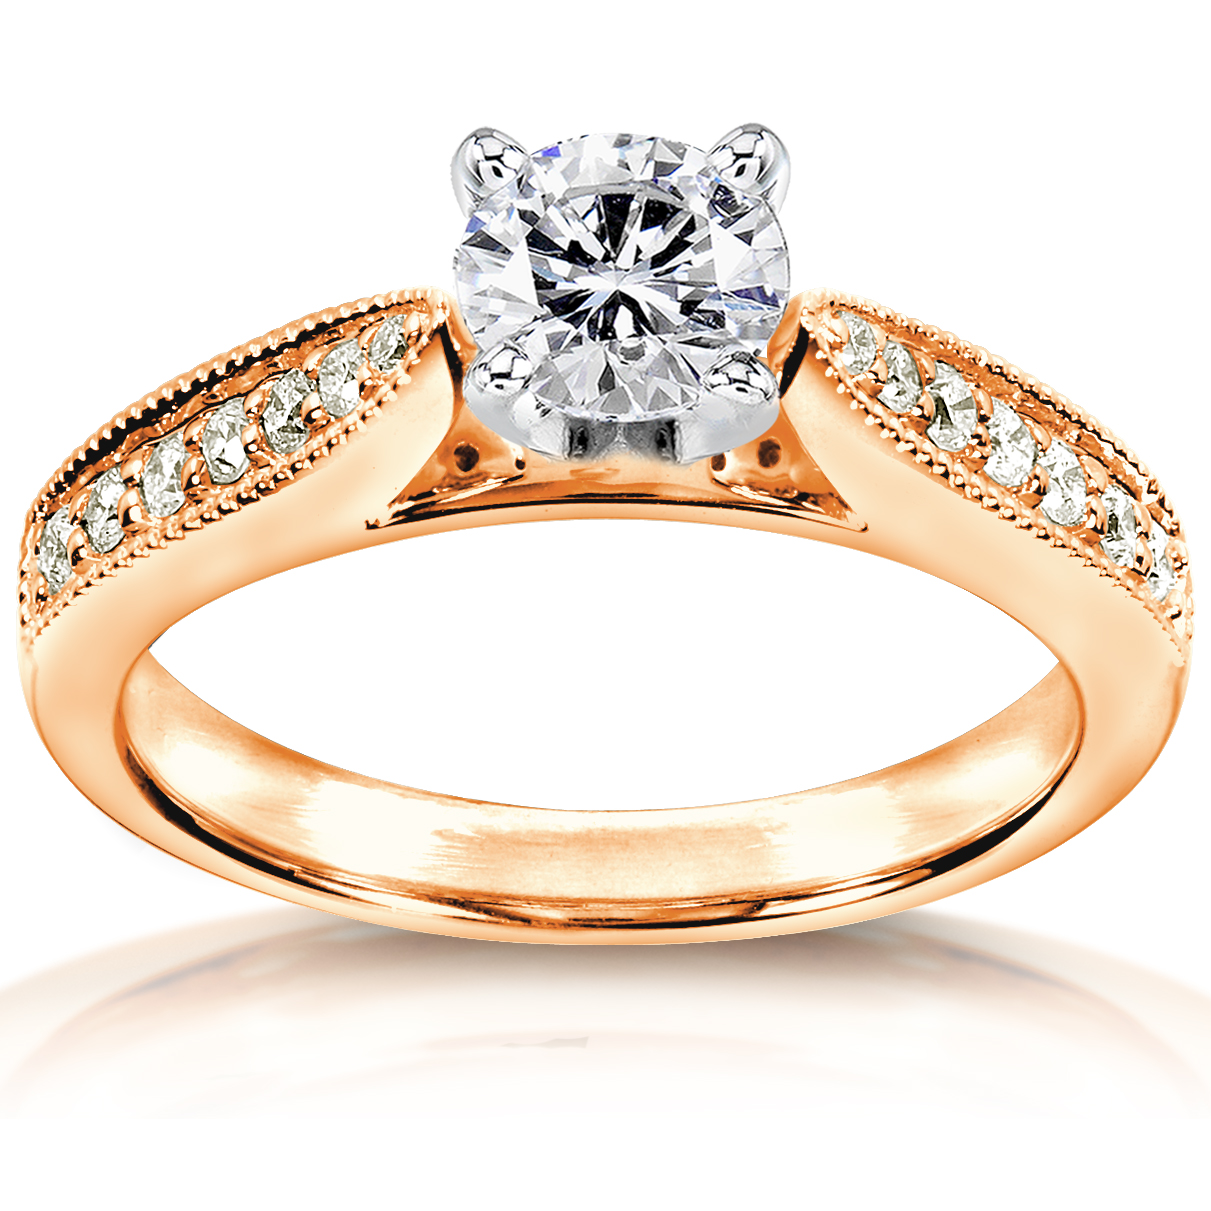 Horrible Rose G Engagement Rings Diamond Engagement Rings Kmart What Is A Promise Ring Definition What Is A Promise Ring A Relationship wedding rings What Is A Promise Ring